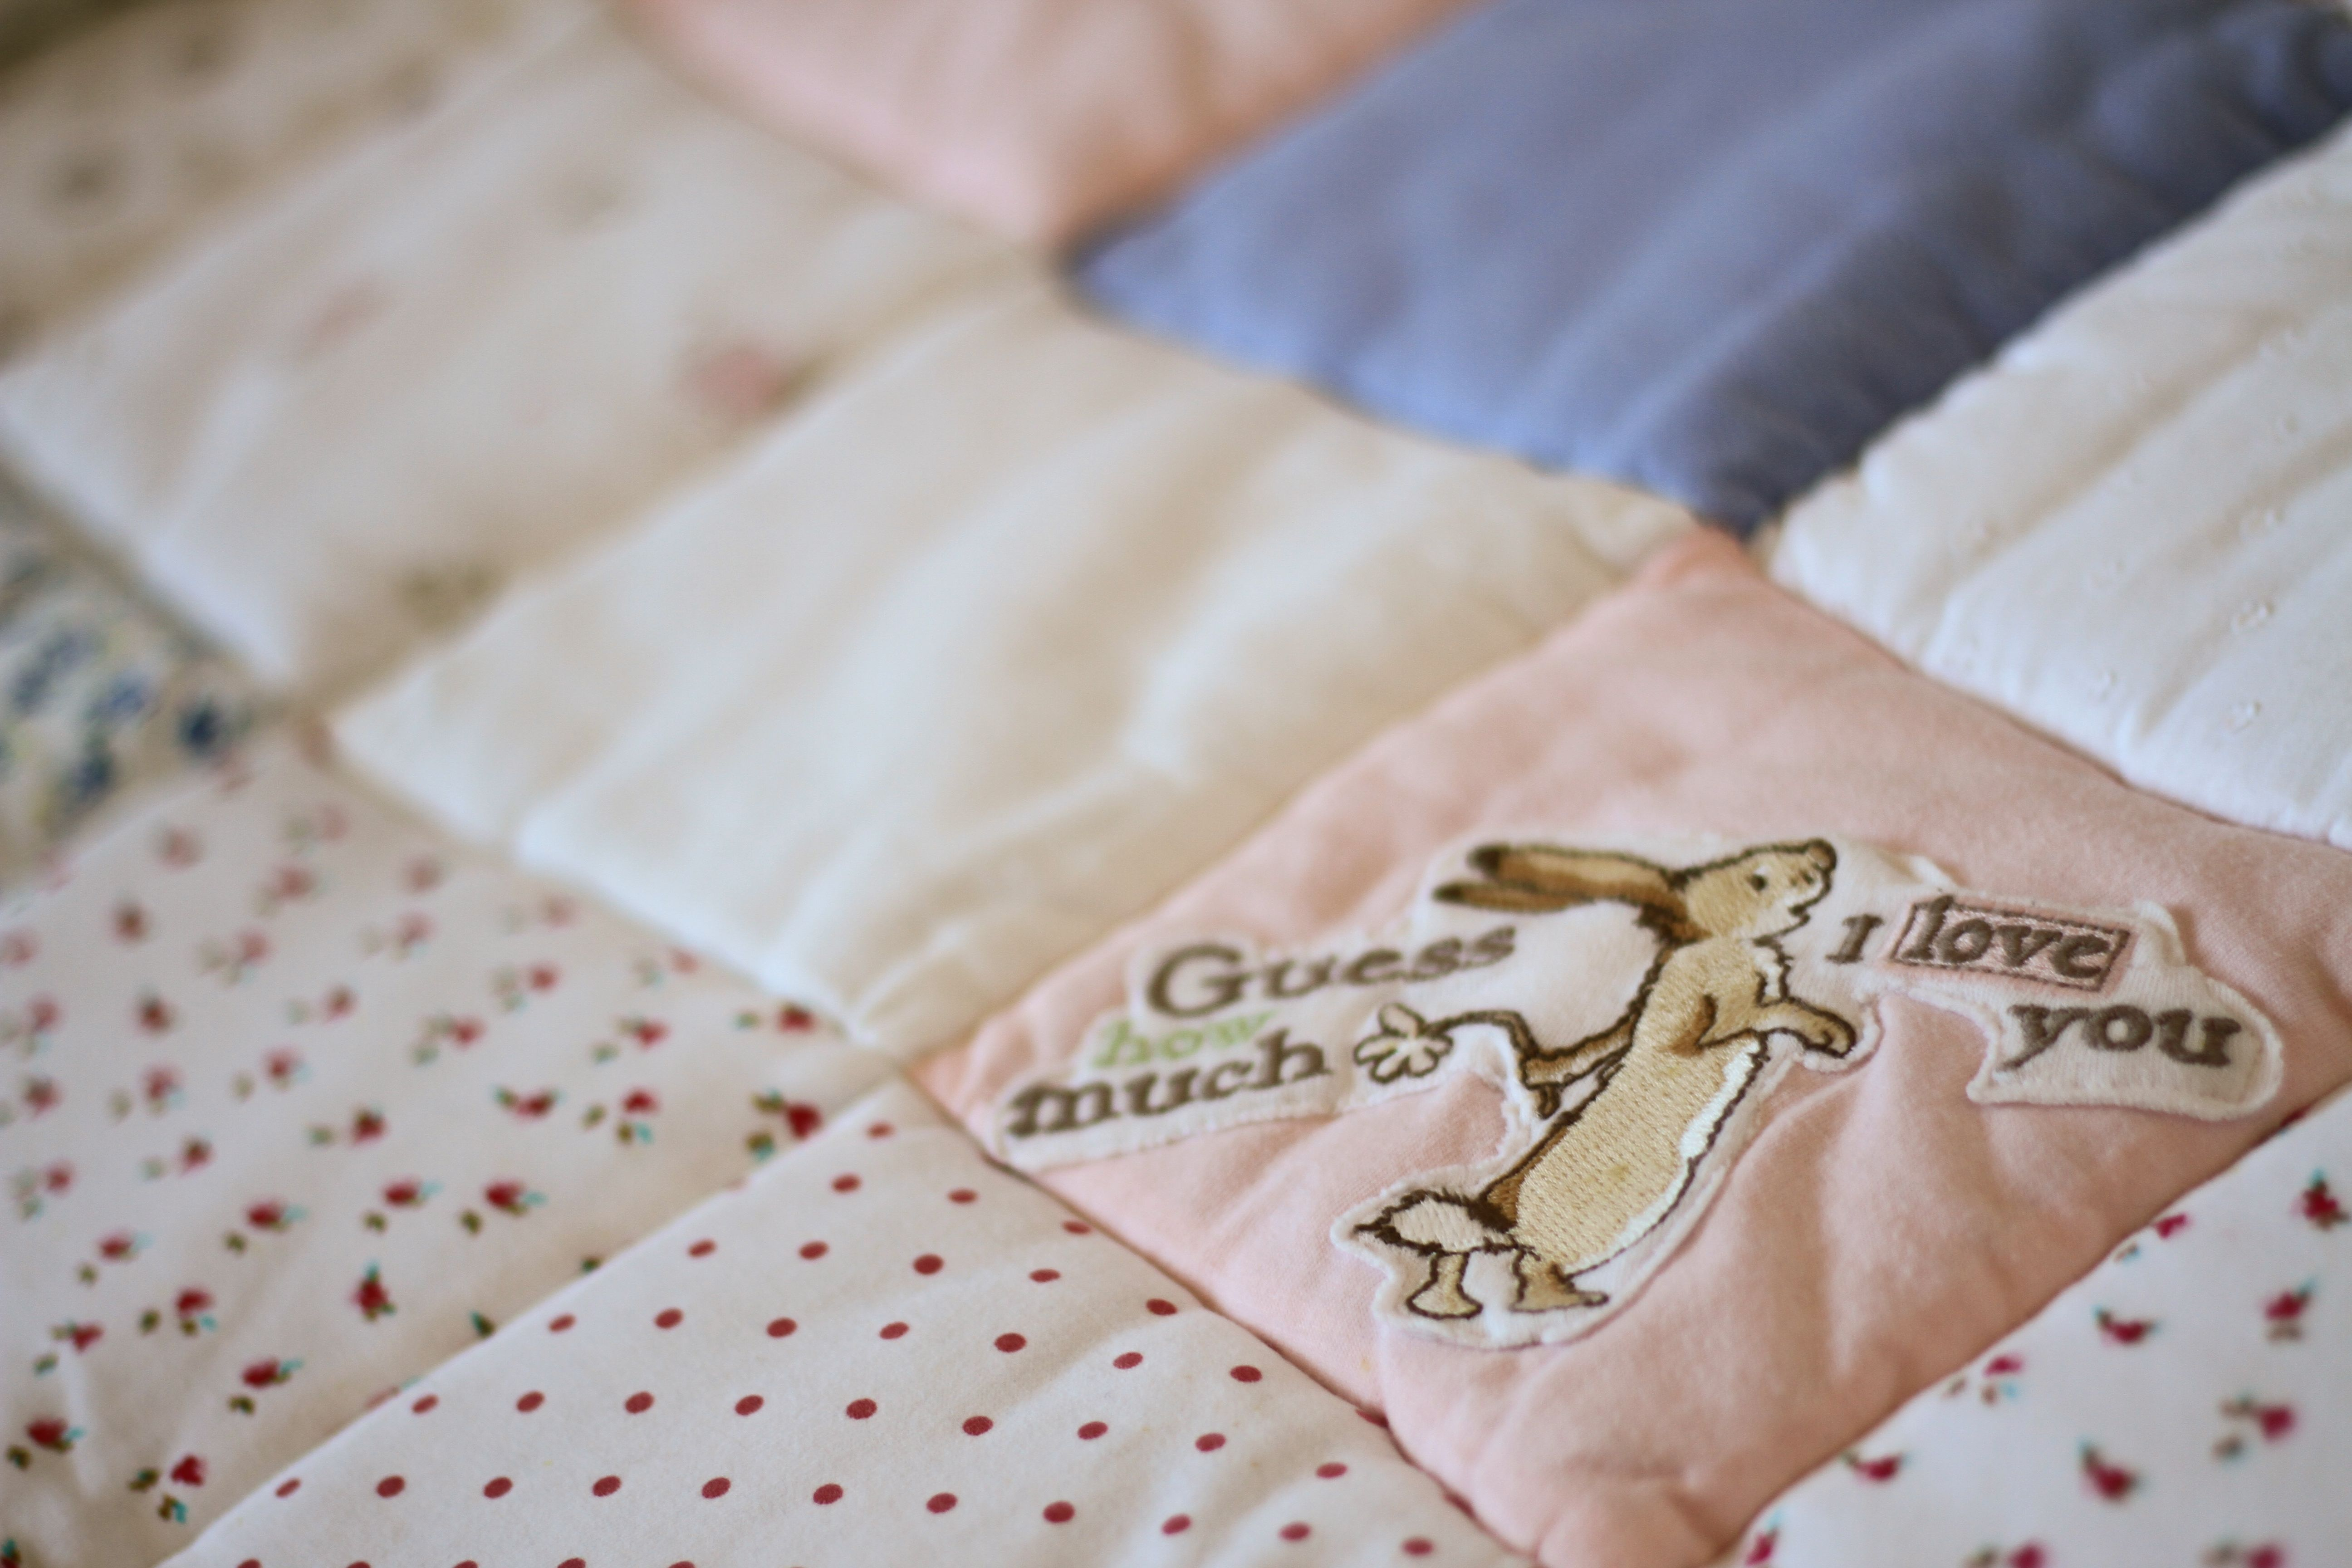 Mumorabilia - a unique and bespoke product encapsulating a special time in a family's life. #handmade #bespoke #babygift #babyboy #babygirl #memories #mumorabilia #memorabilia #personal #keepsakes #baby #blanket